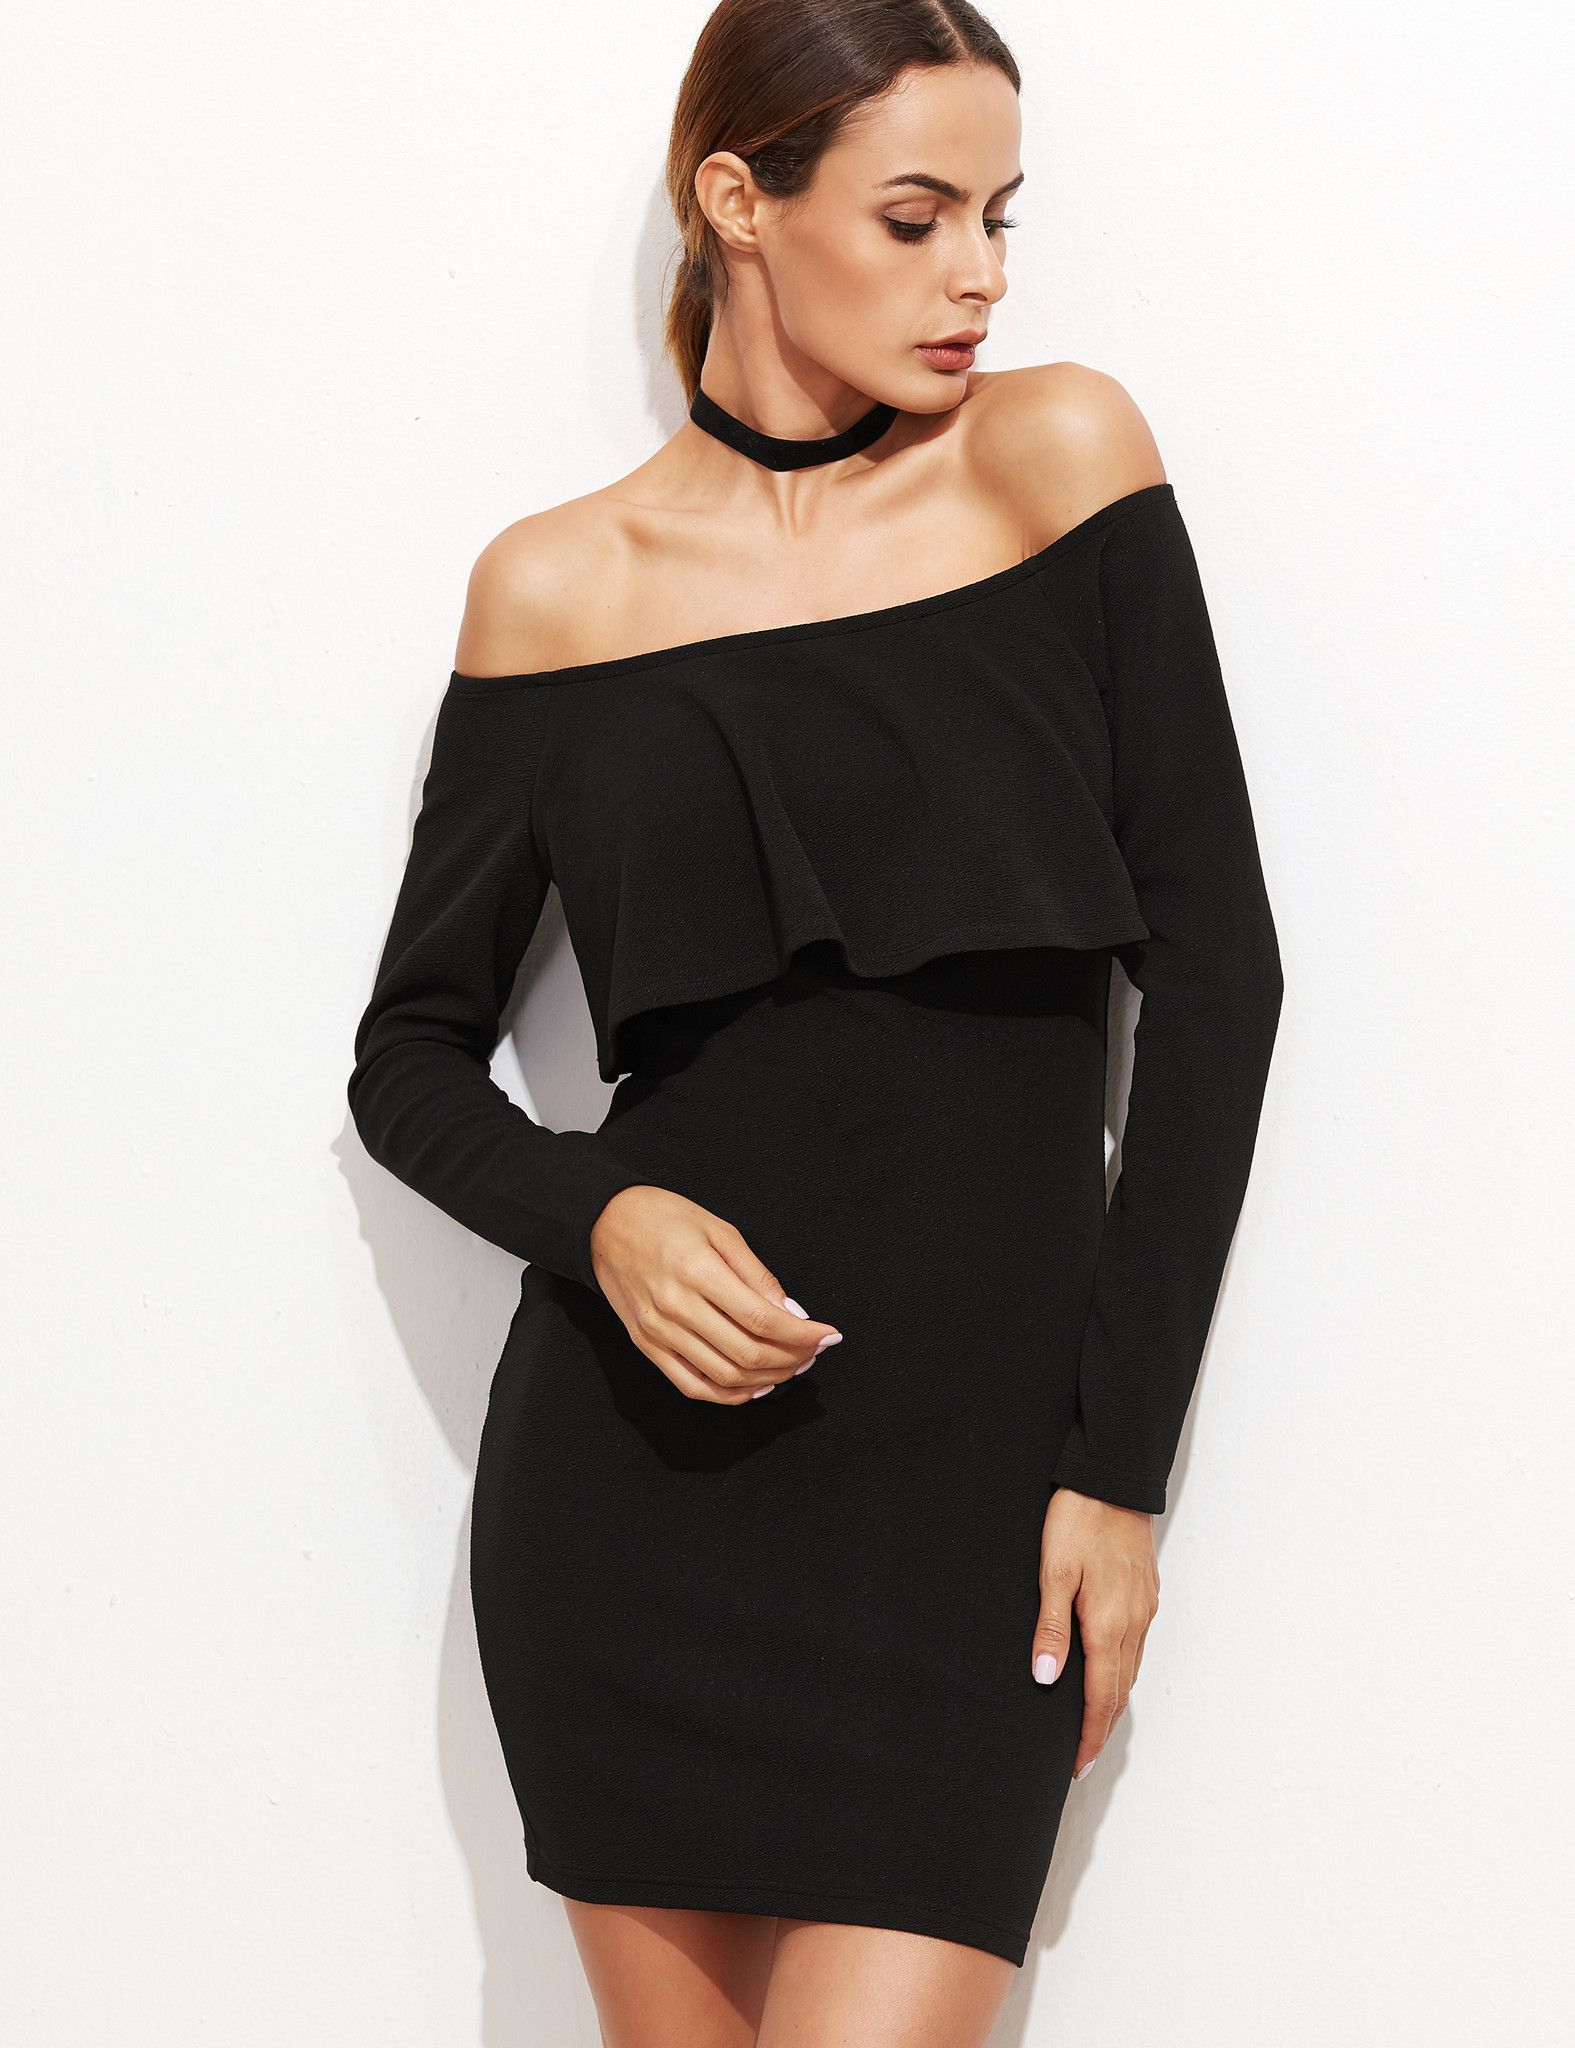 795b1a2c3616 ... L:31cm Fabric: Fabric has some stretch Season: Fall Pattern Type: Plain  Sleeve Length: Long Sleeve Color: Black Dresses Length: Short Style: Party  ...